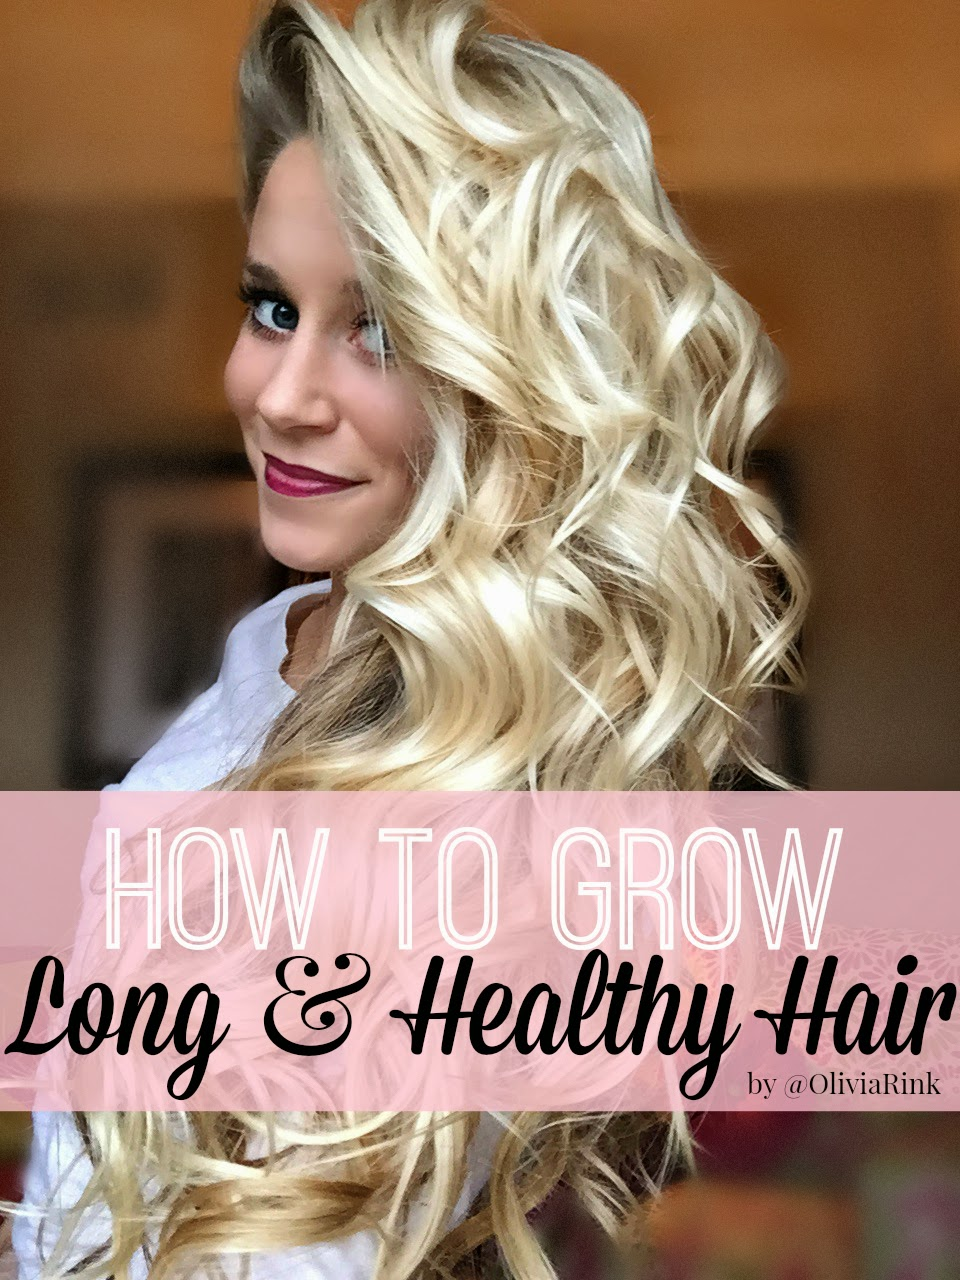 e96d3e89933 How to Grow Long   Healthy Hair - Welcome to Olivia Rink